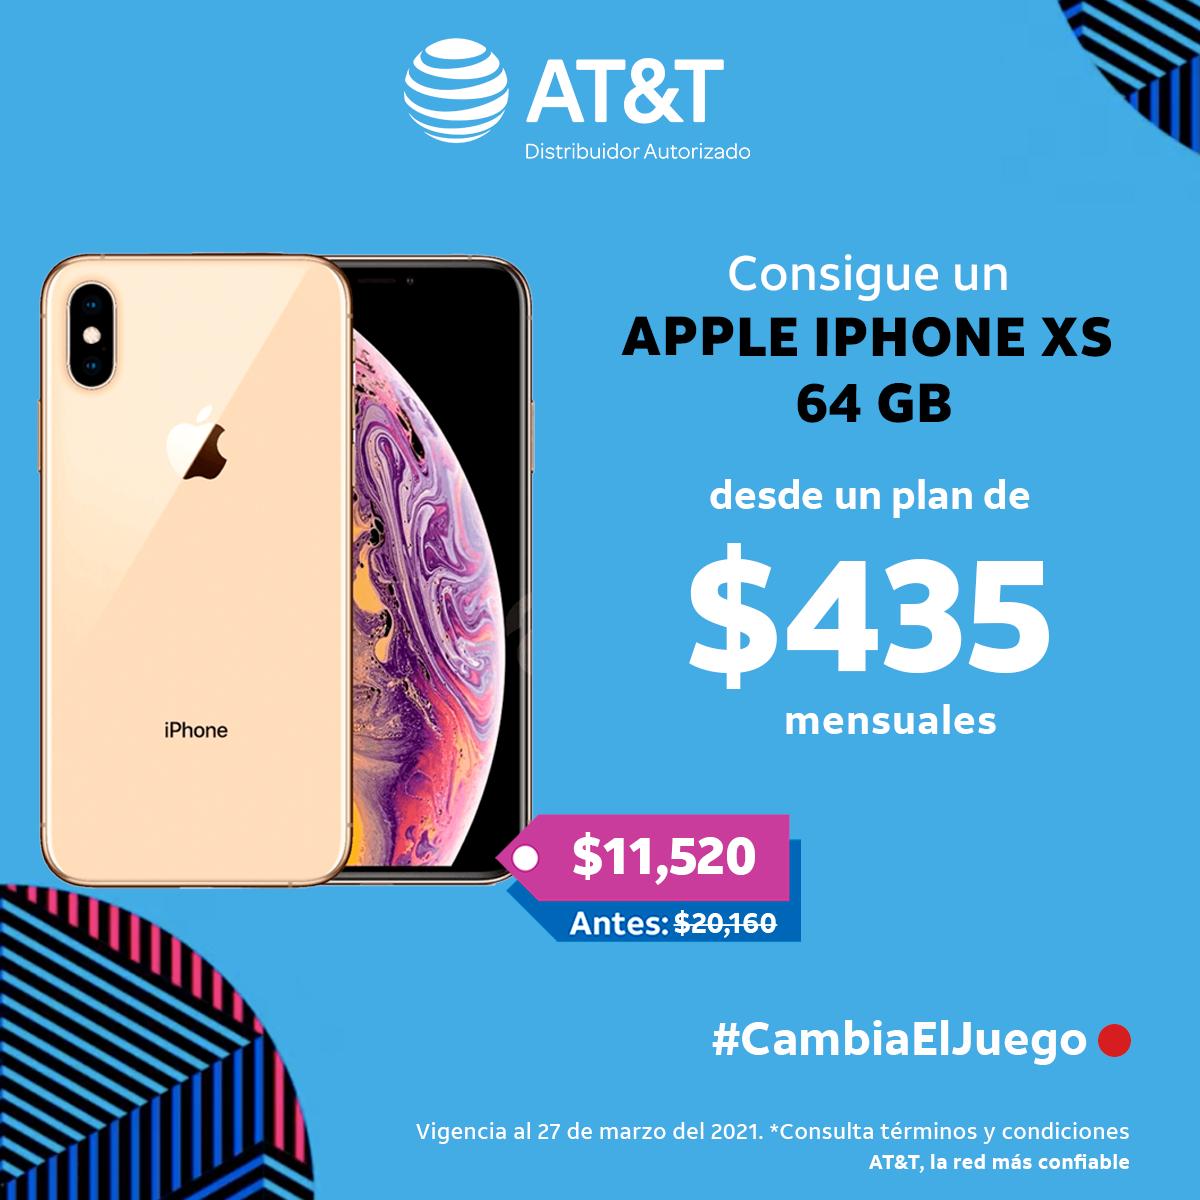 Llévate un APPLE iPhone XS 64 GB desde u